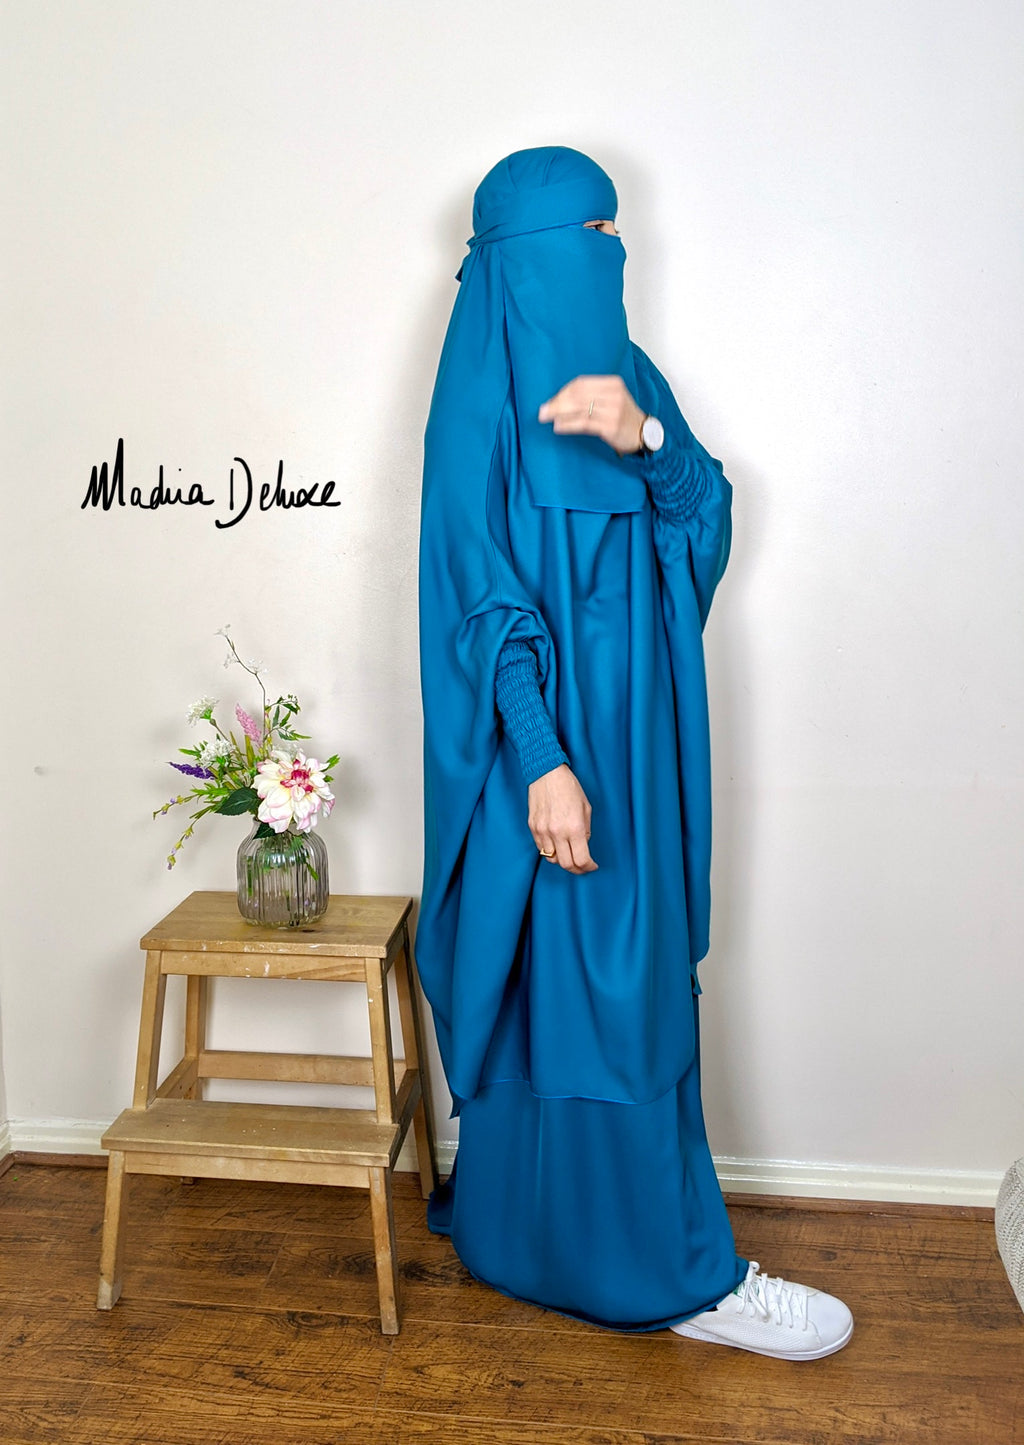 NEW ! JILBAB DELUXE MAKKAH DIAMOND  (+ niqab included )